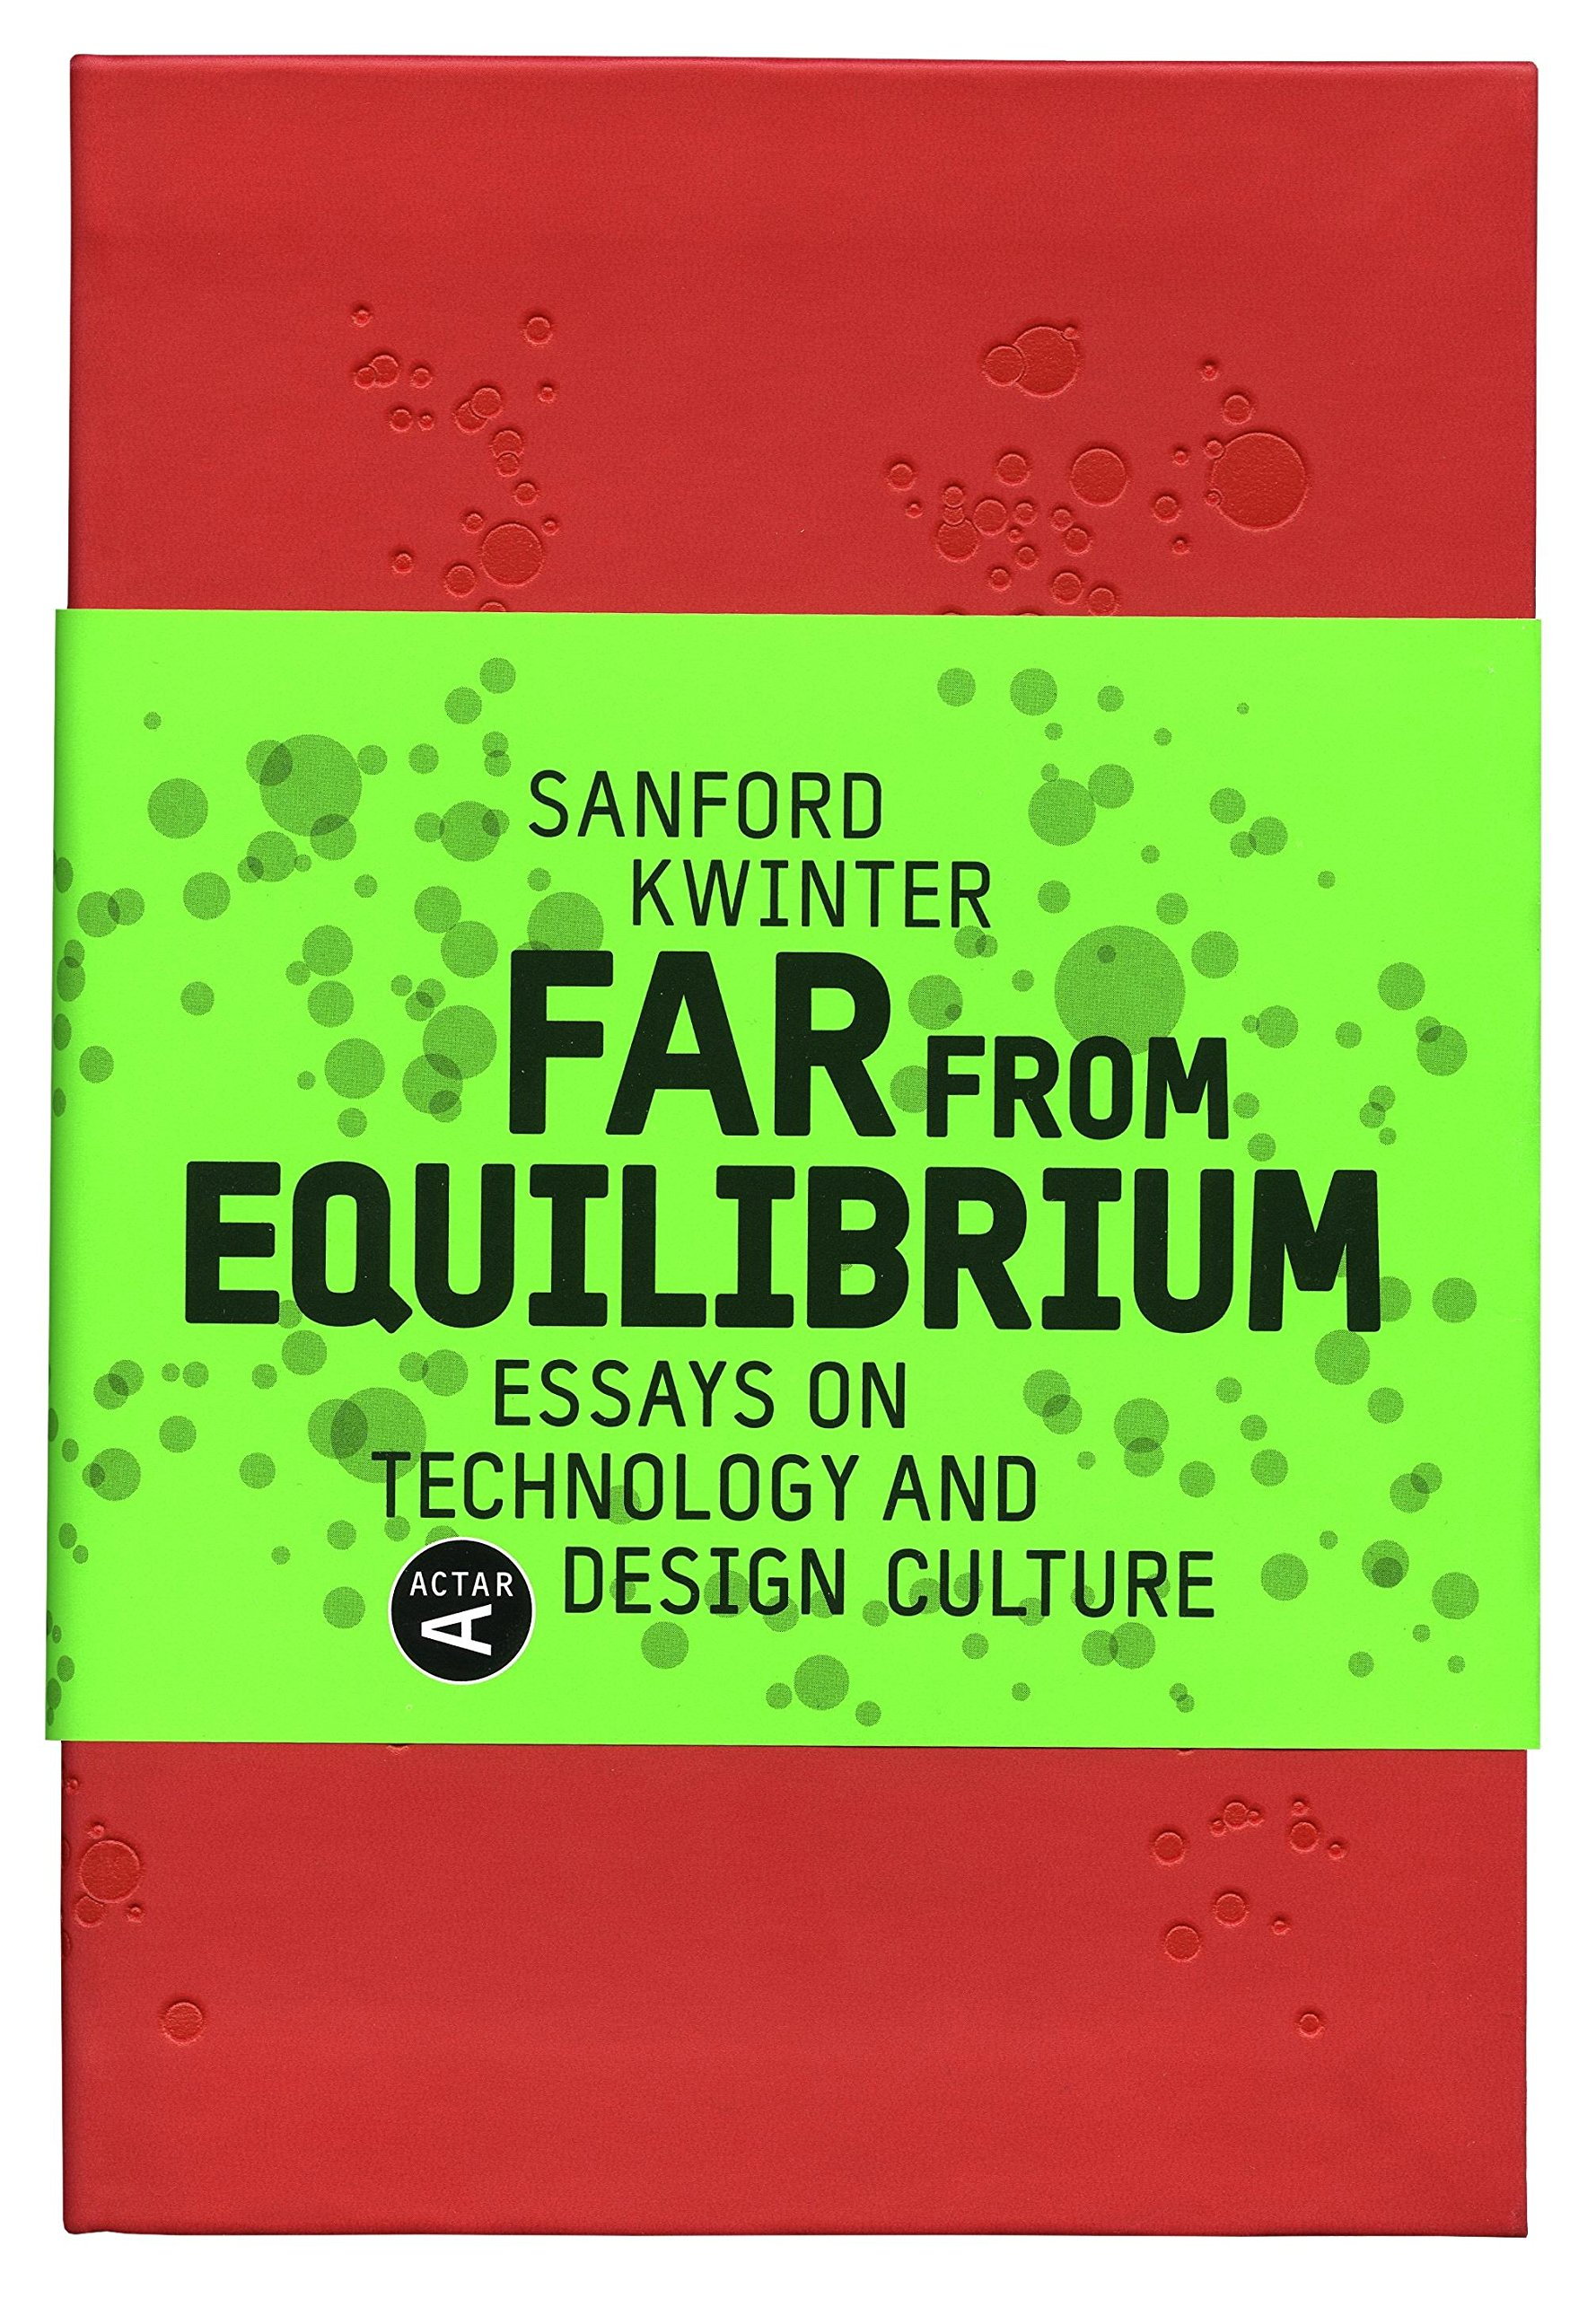 Research Proposal Essay Topics Far From Equilibrium Essays On Technology And Design Culture  Amazoncouk Sanford Kwinter  Books Example Of Thesis Statement For Essay also Reflection Paper Essay Far From Equilibrium Essays On Technology And Design Culture  Essays On Health Care Reform